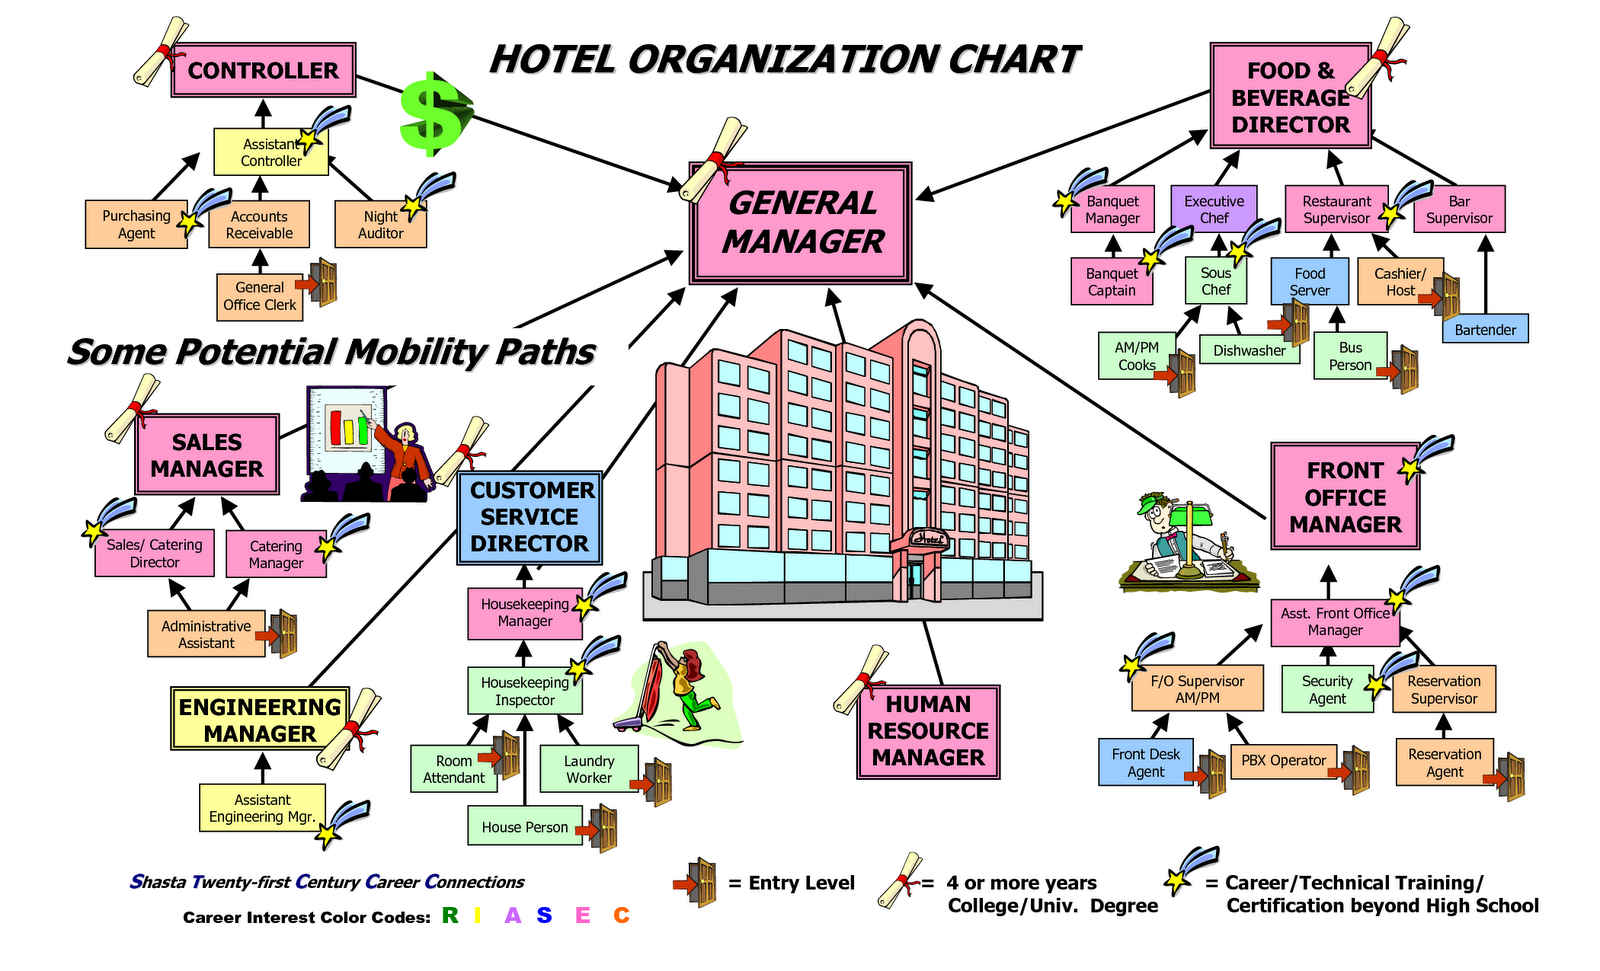 Every Hotel Has A Diffe Organizational Structures Depending On The Size Of Number Rooms Capacity Employees